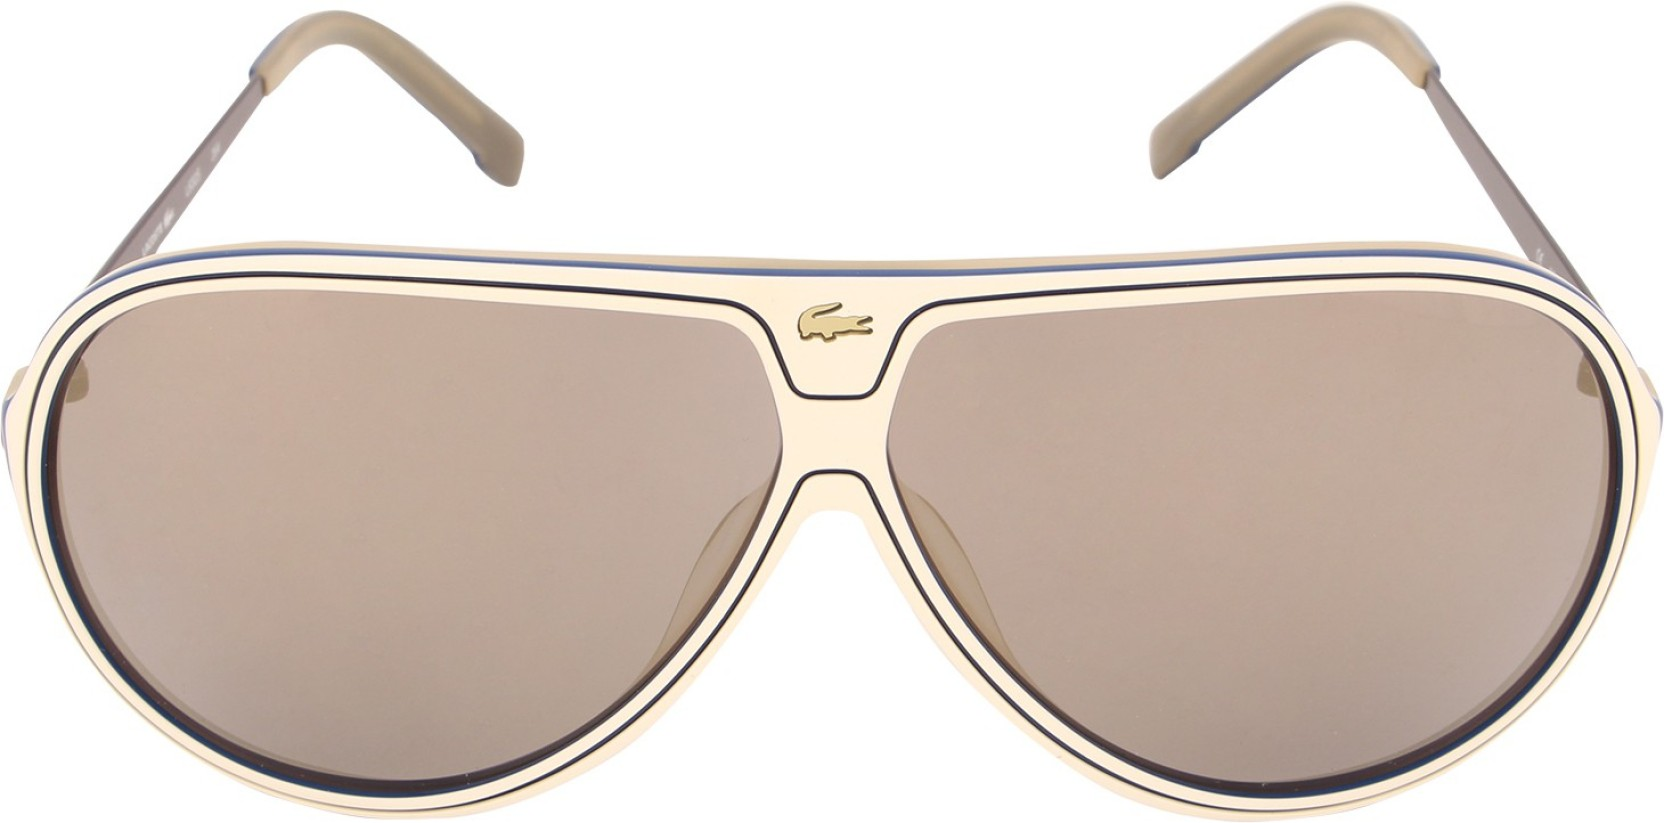 ee0af12a73 Buy Lacoste Aviator Sunglasses Brown For Men Online   Best Prices in ...